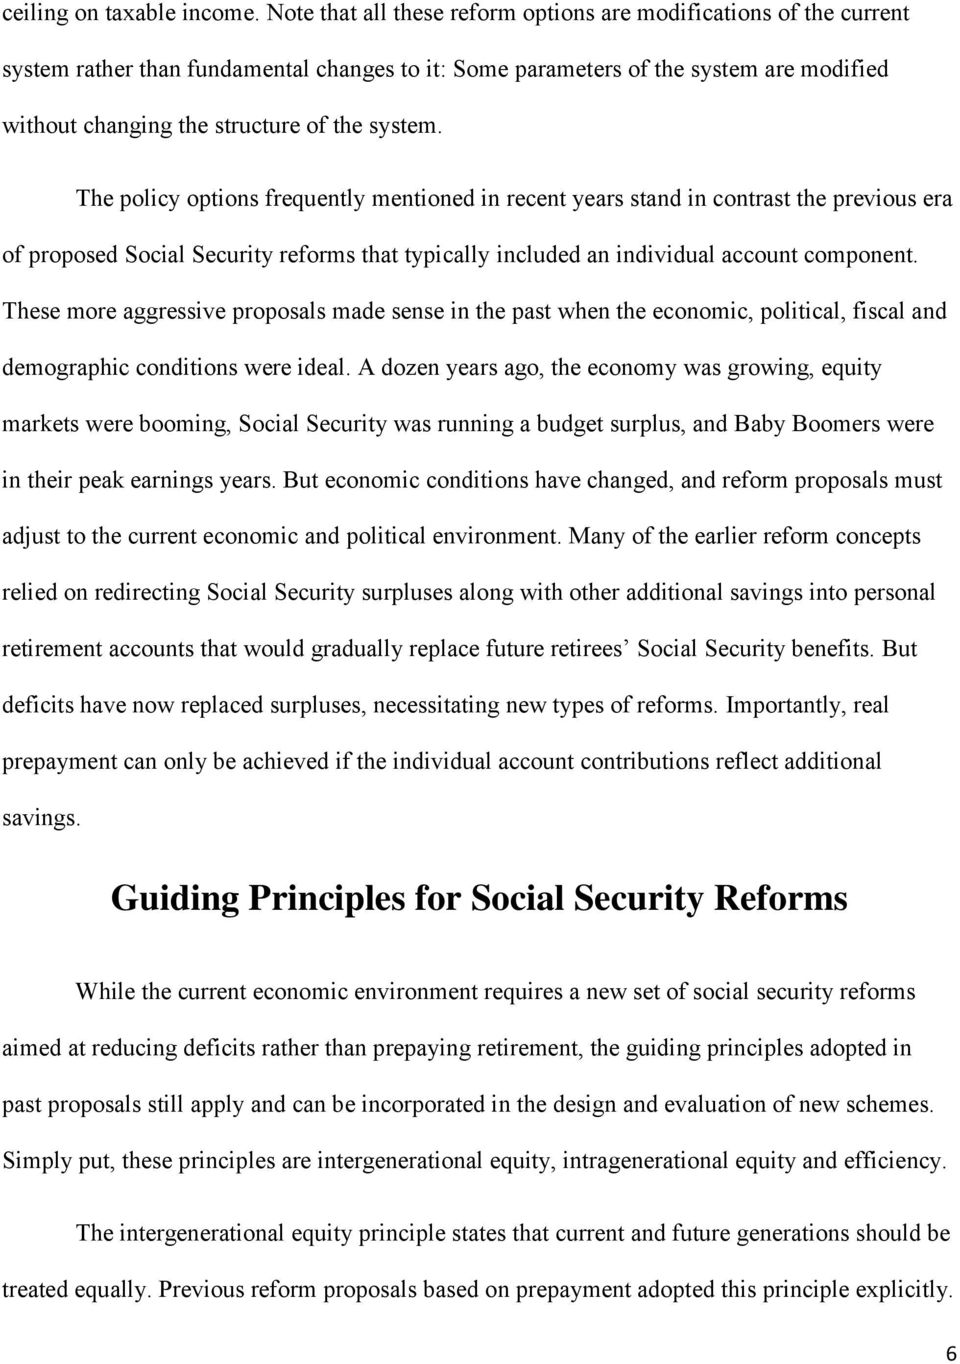 system. The policy options frequently mentioned in recent years stand in contrast the previous era of proposed Social Security reforms that typically included an individual account component.